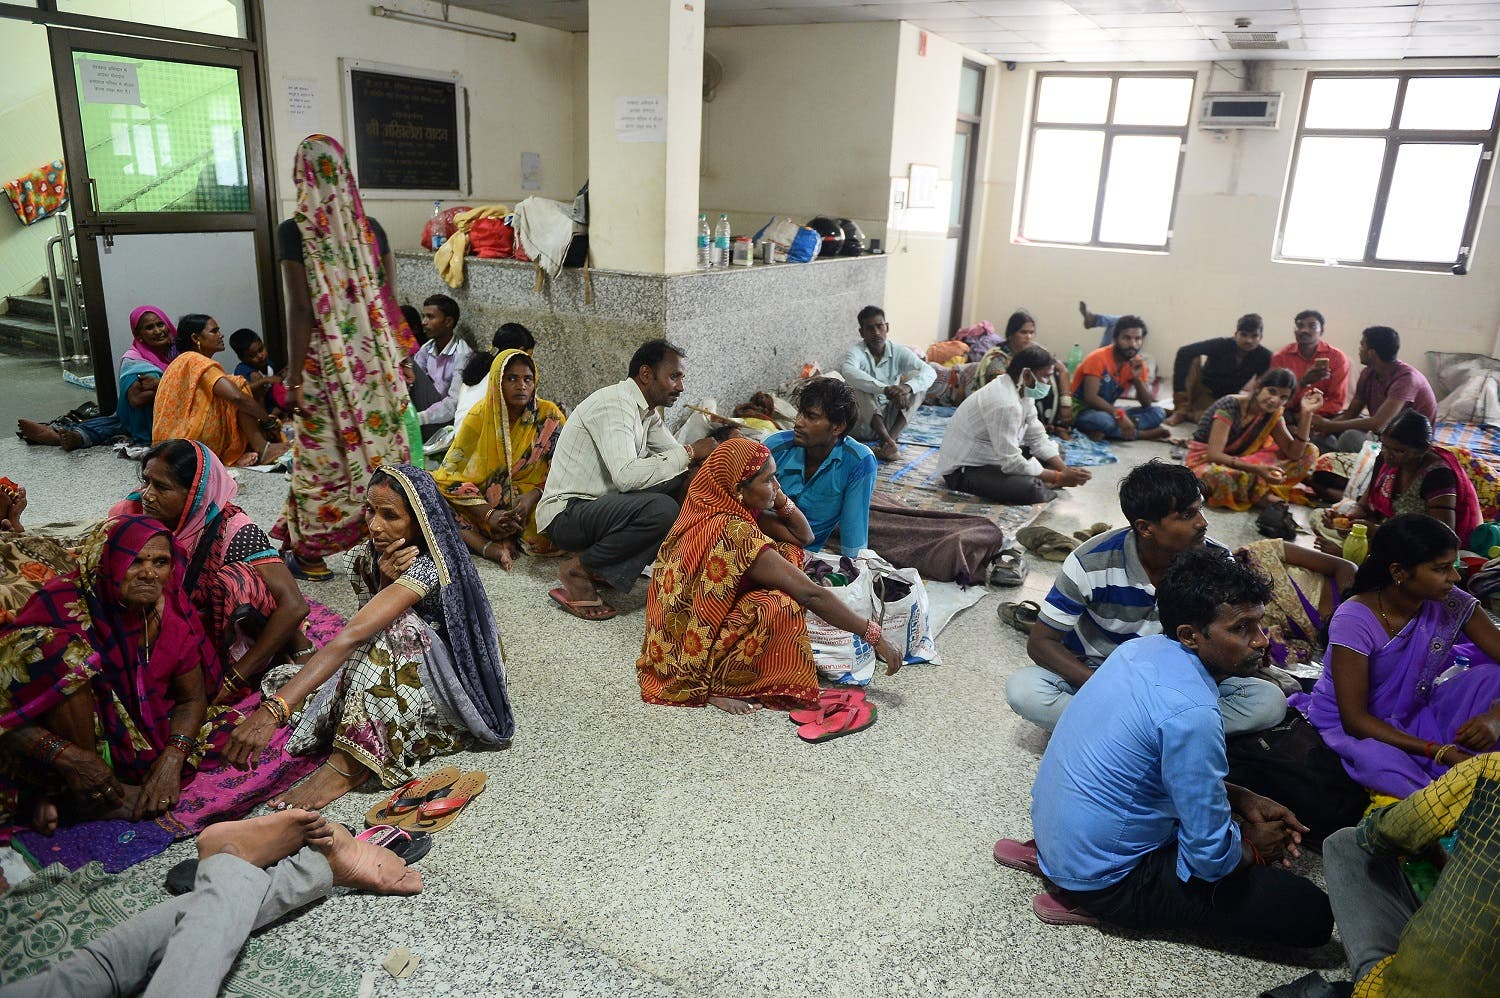 Relatives of patients wait outside the encephalitis ward at the Baba Raghav Das Hospital in Gorakhpur on August 14, 2017. (AFP)